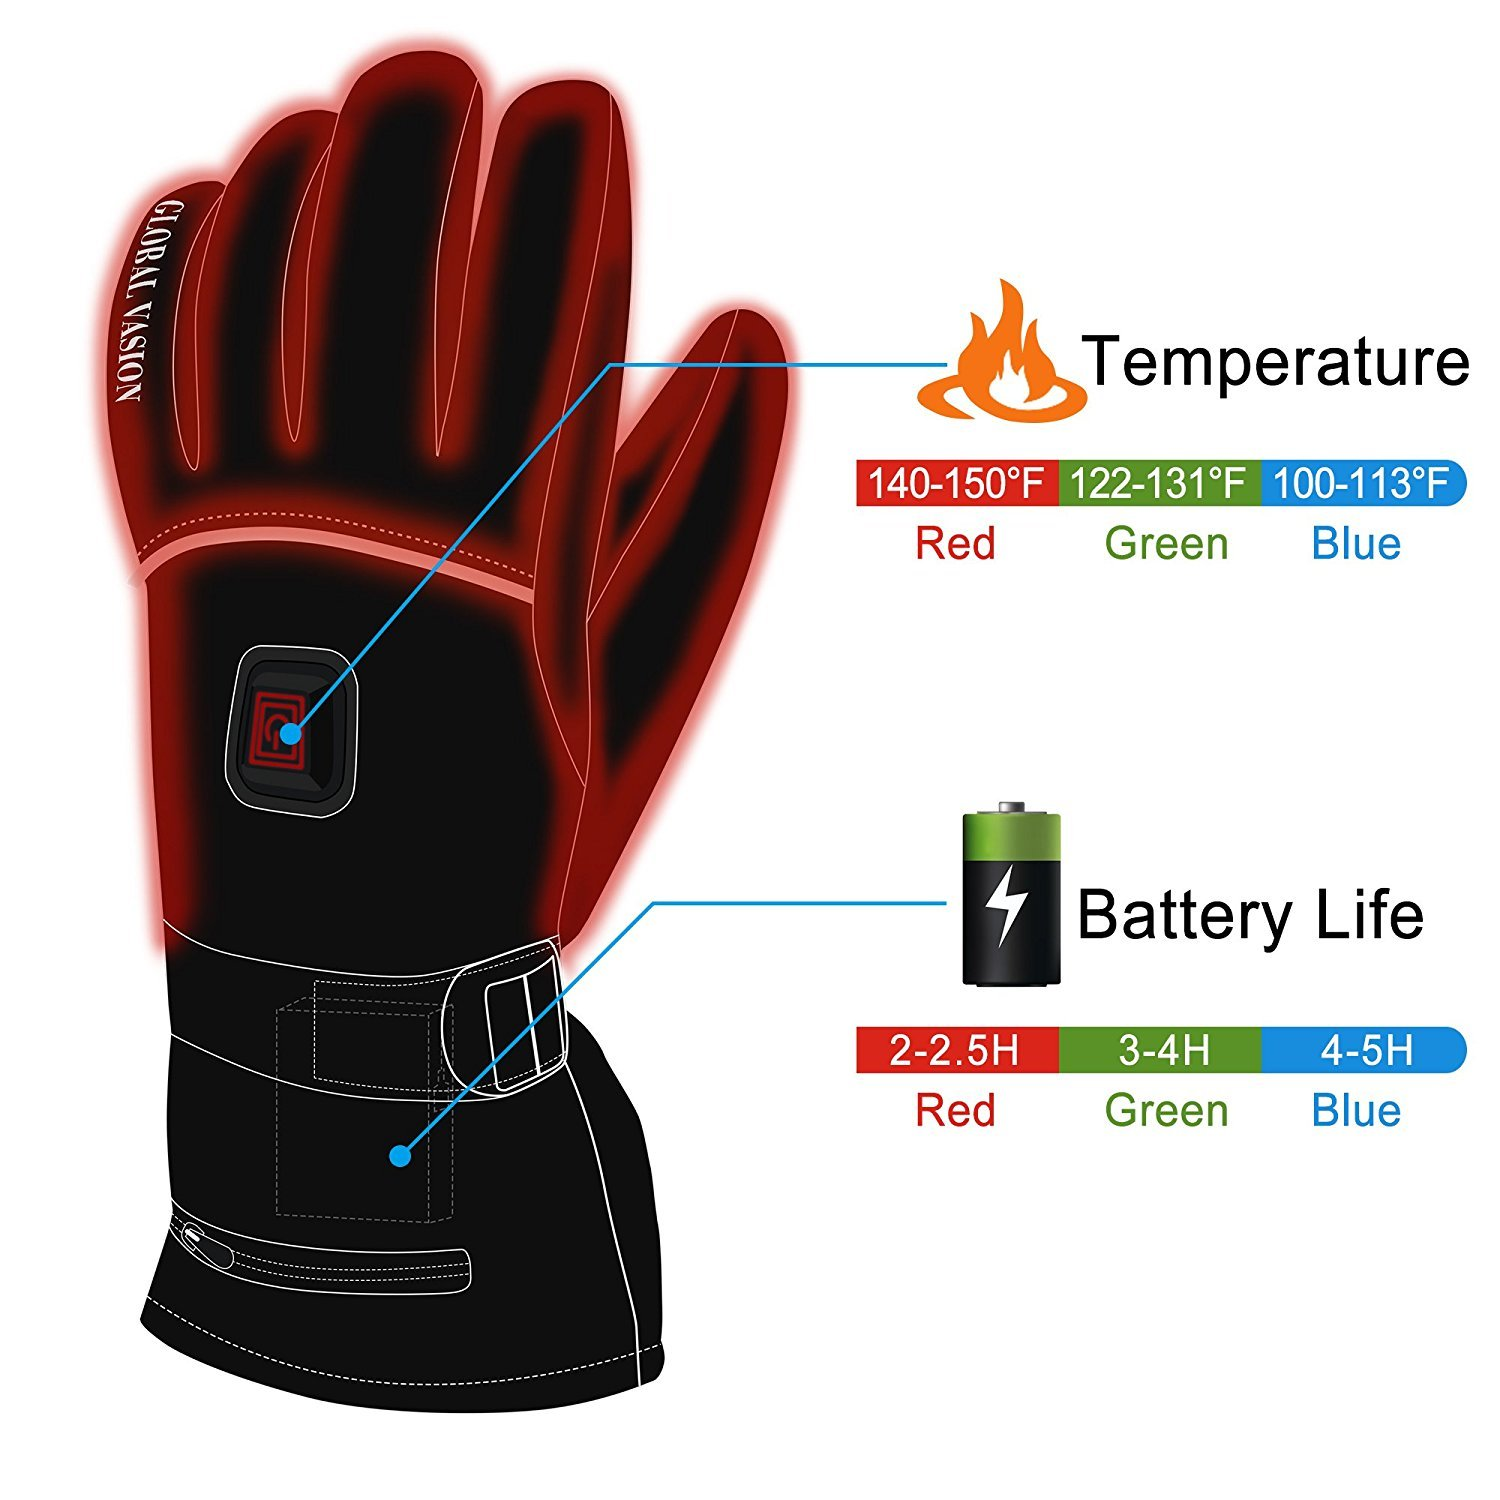 HEAT WARMER Men Women Winter Rechargeable Battery Heated Gloves Electric Heat Gloves Kit,Sports Outdoor Thermal Insulate Gloves,Touchscreen Climb Hiking Skiing Hunting Handwarmer